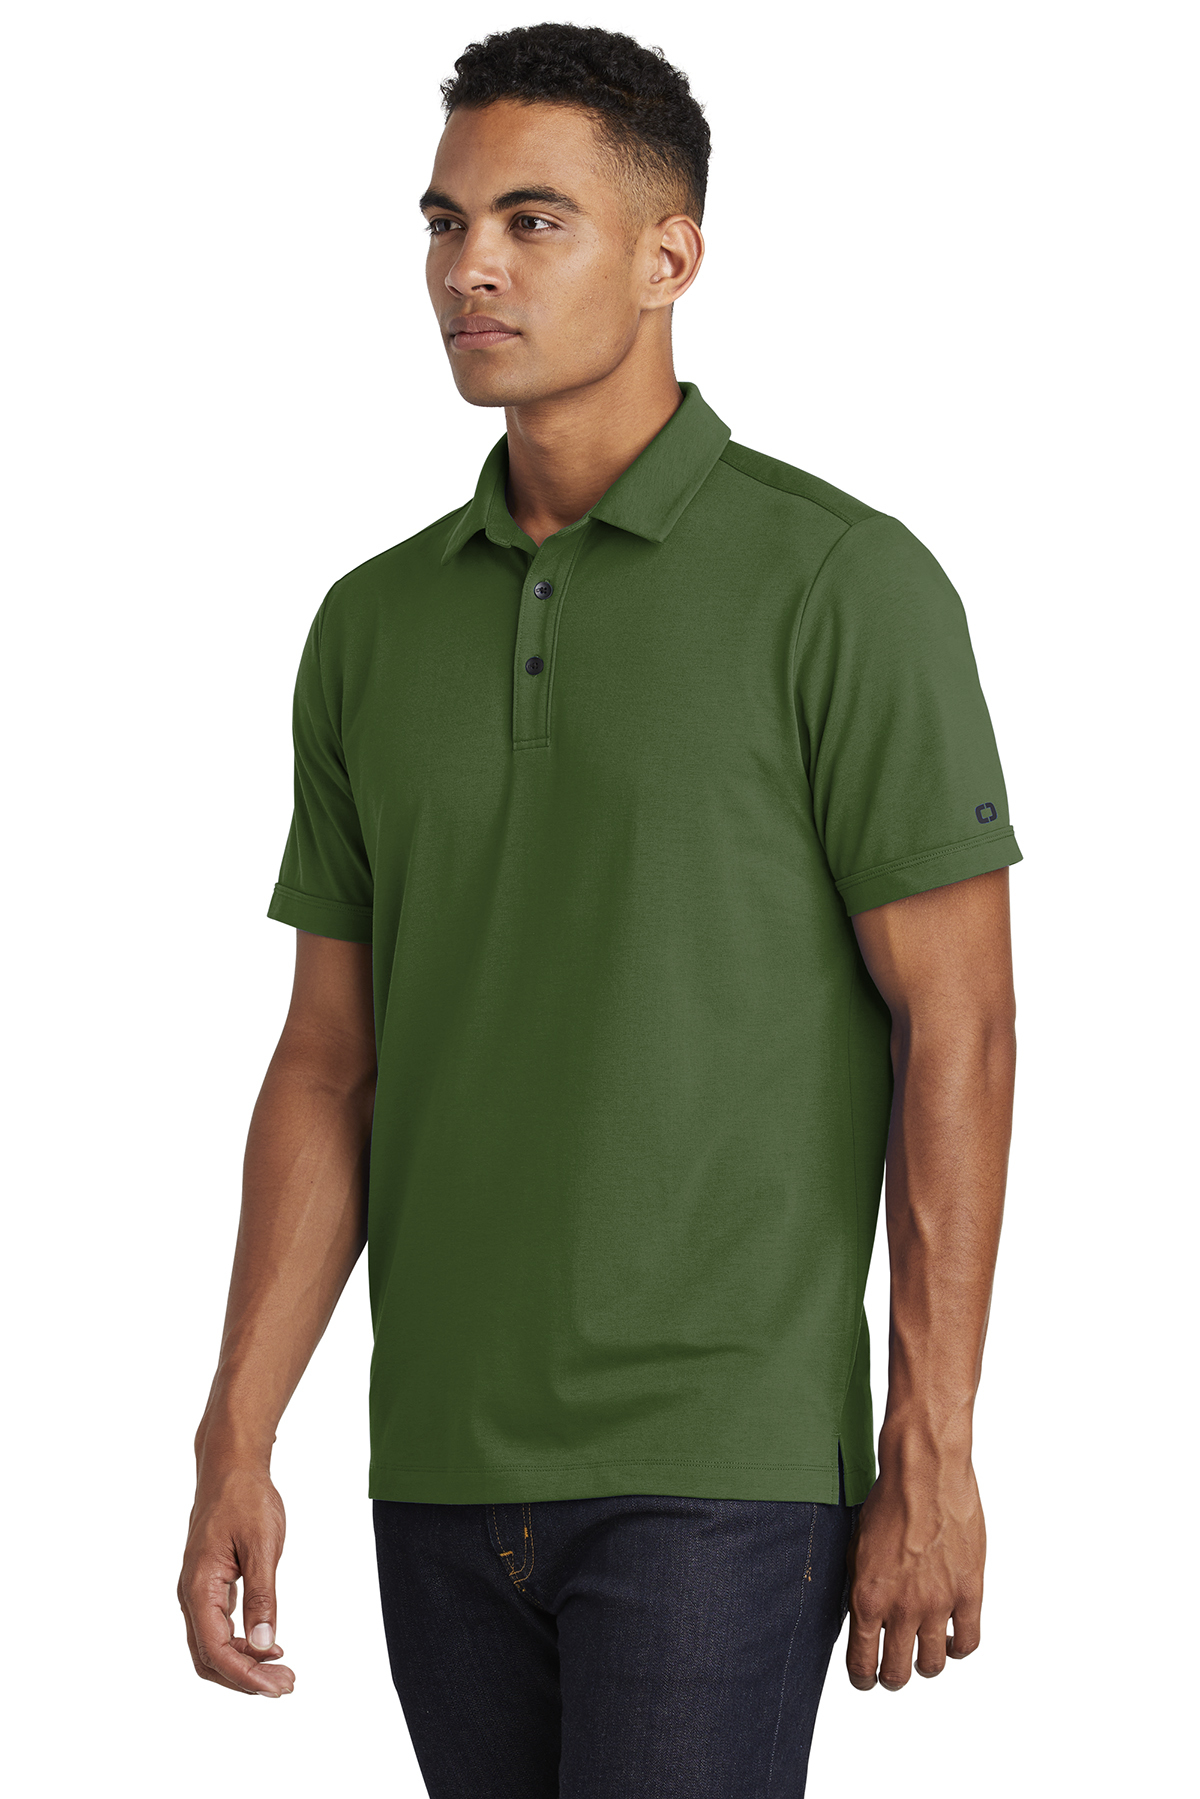 https://adwearpromo.com/product/?productid=28201090&styleid=28210021&category=Basic%20Polos